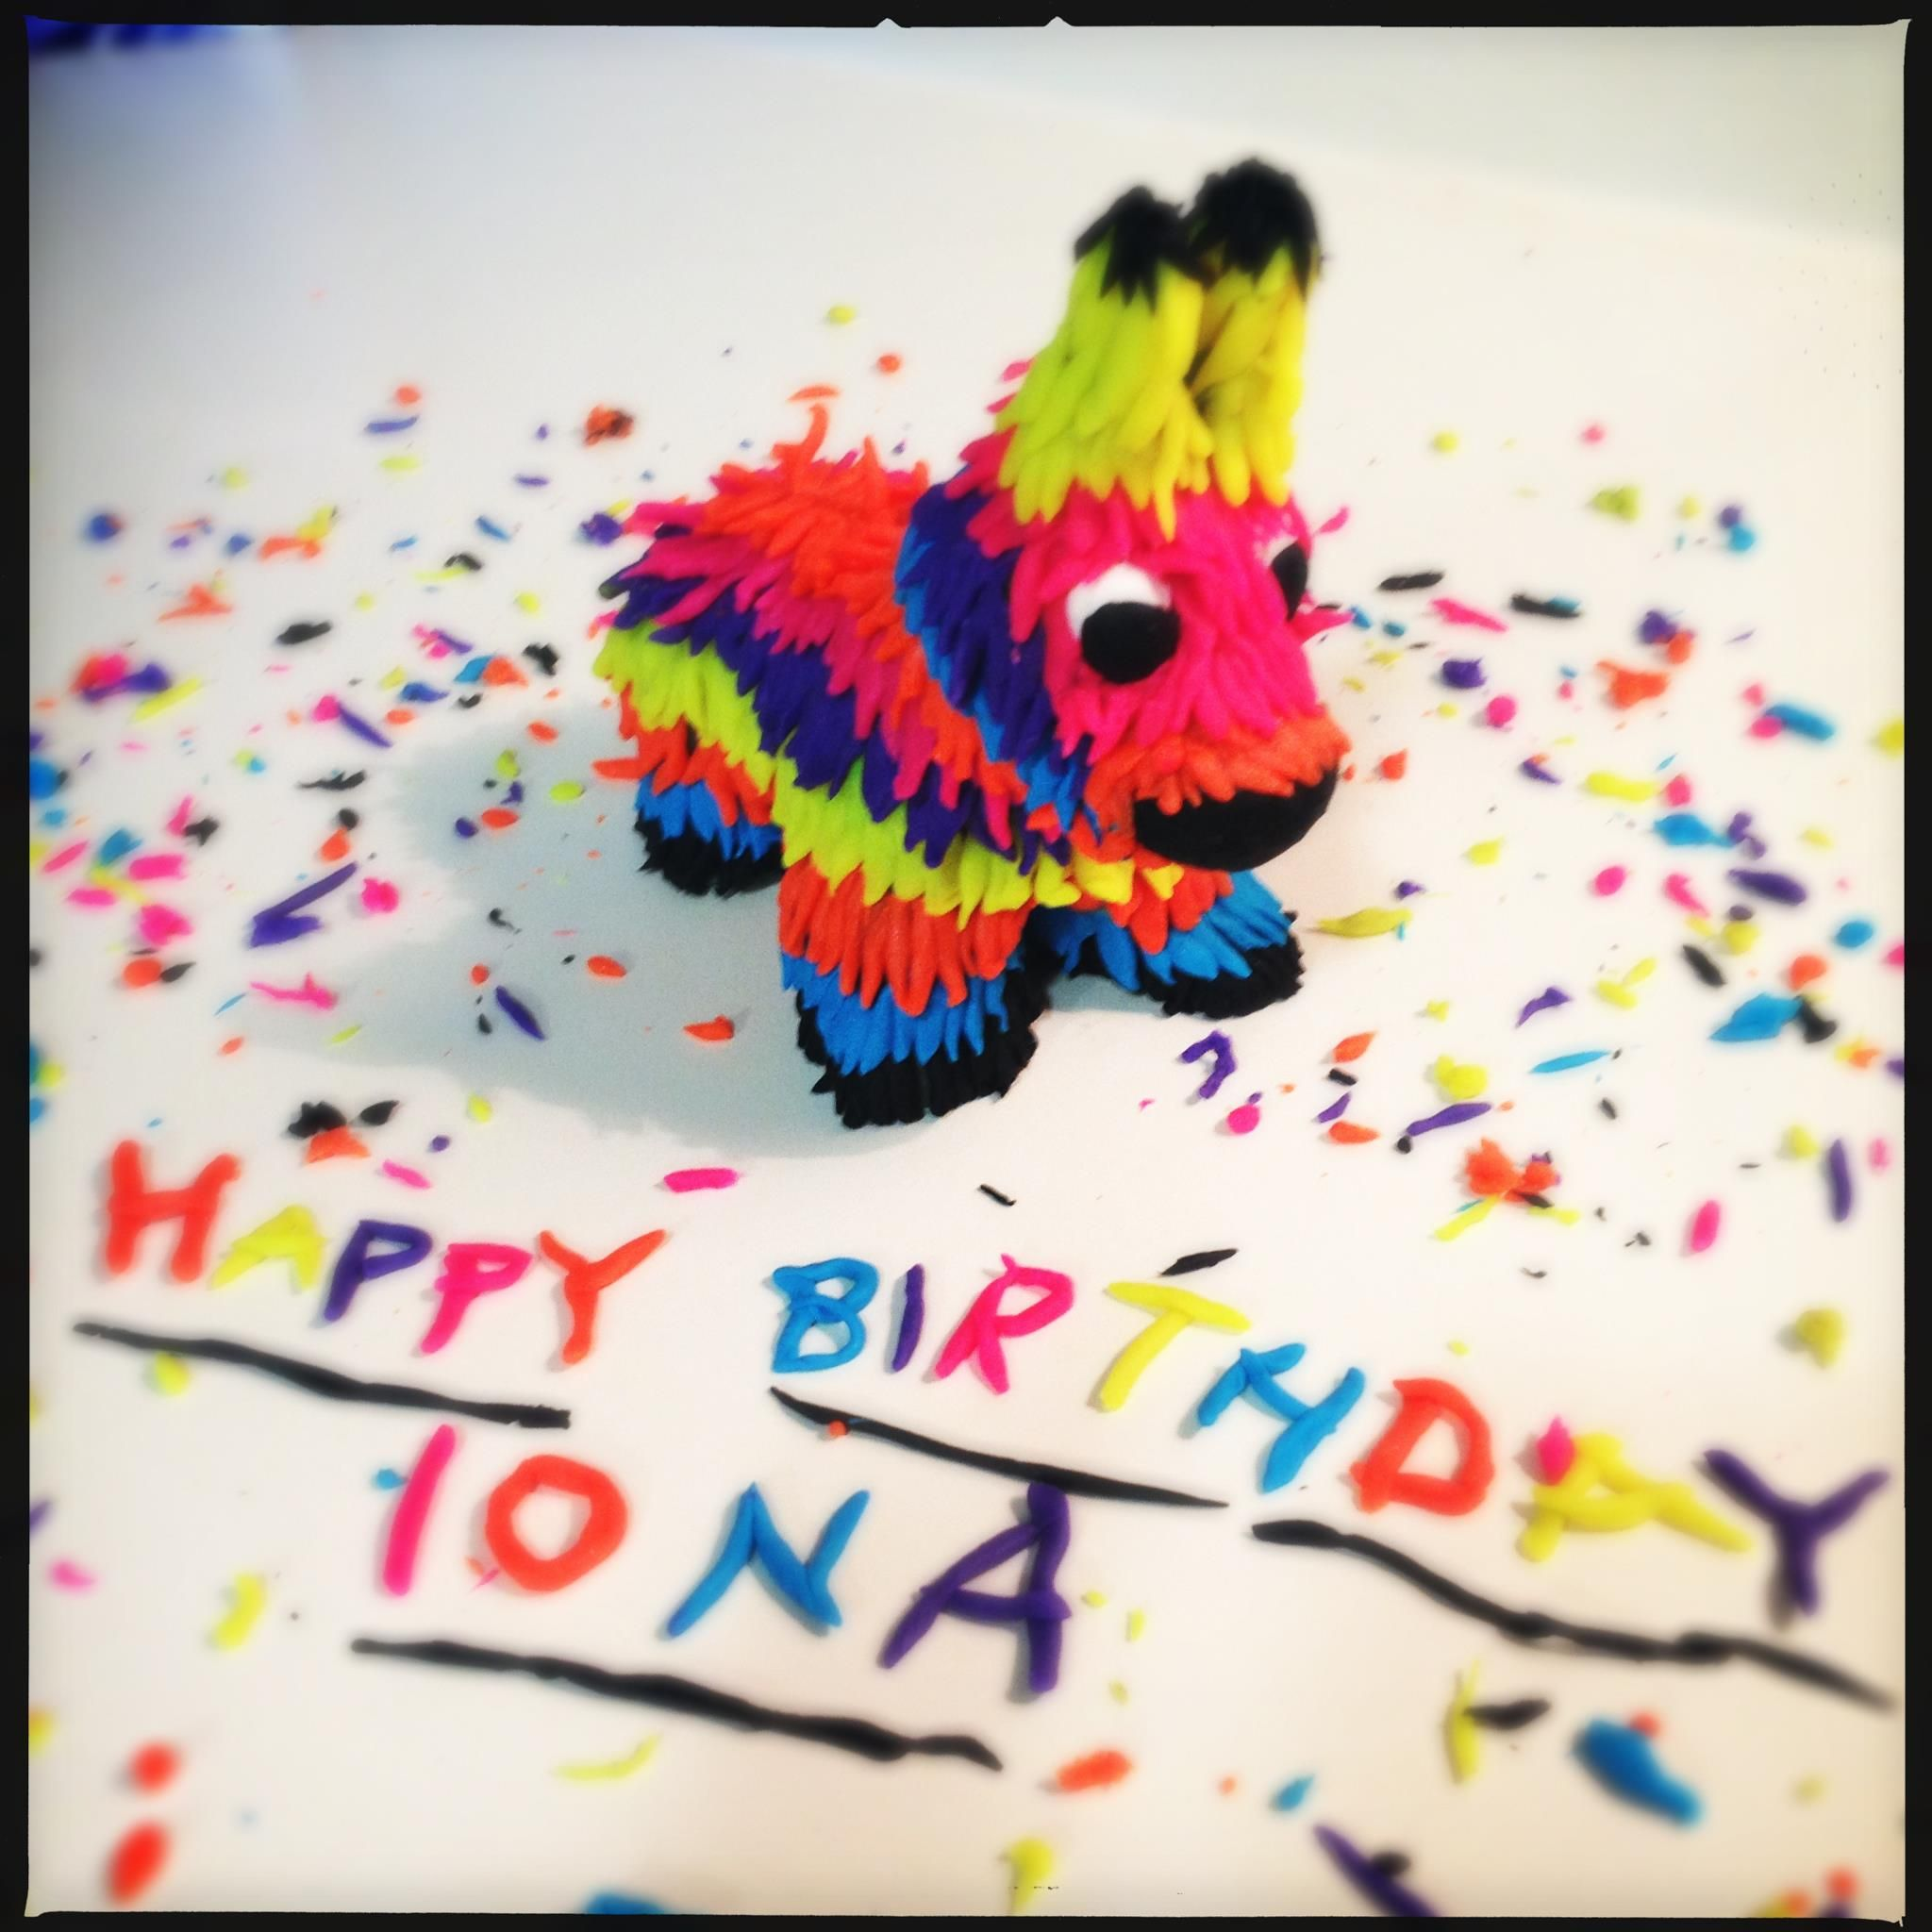 Piñata made with Play-Doh